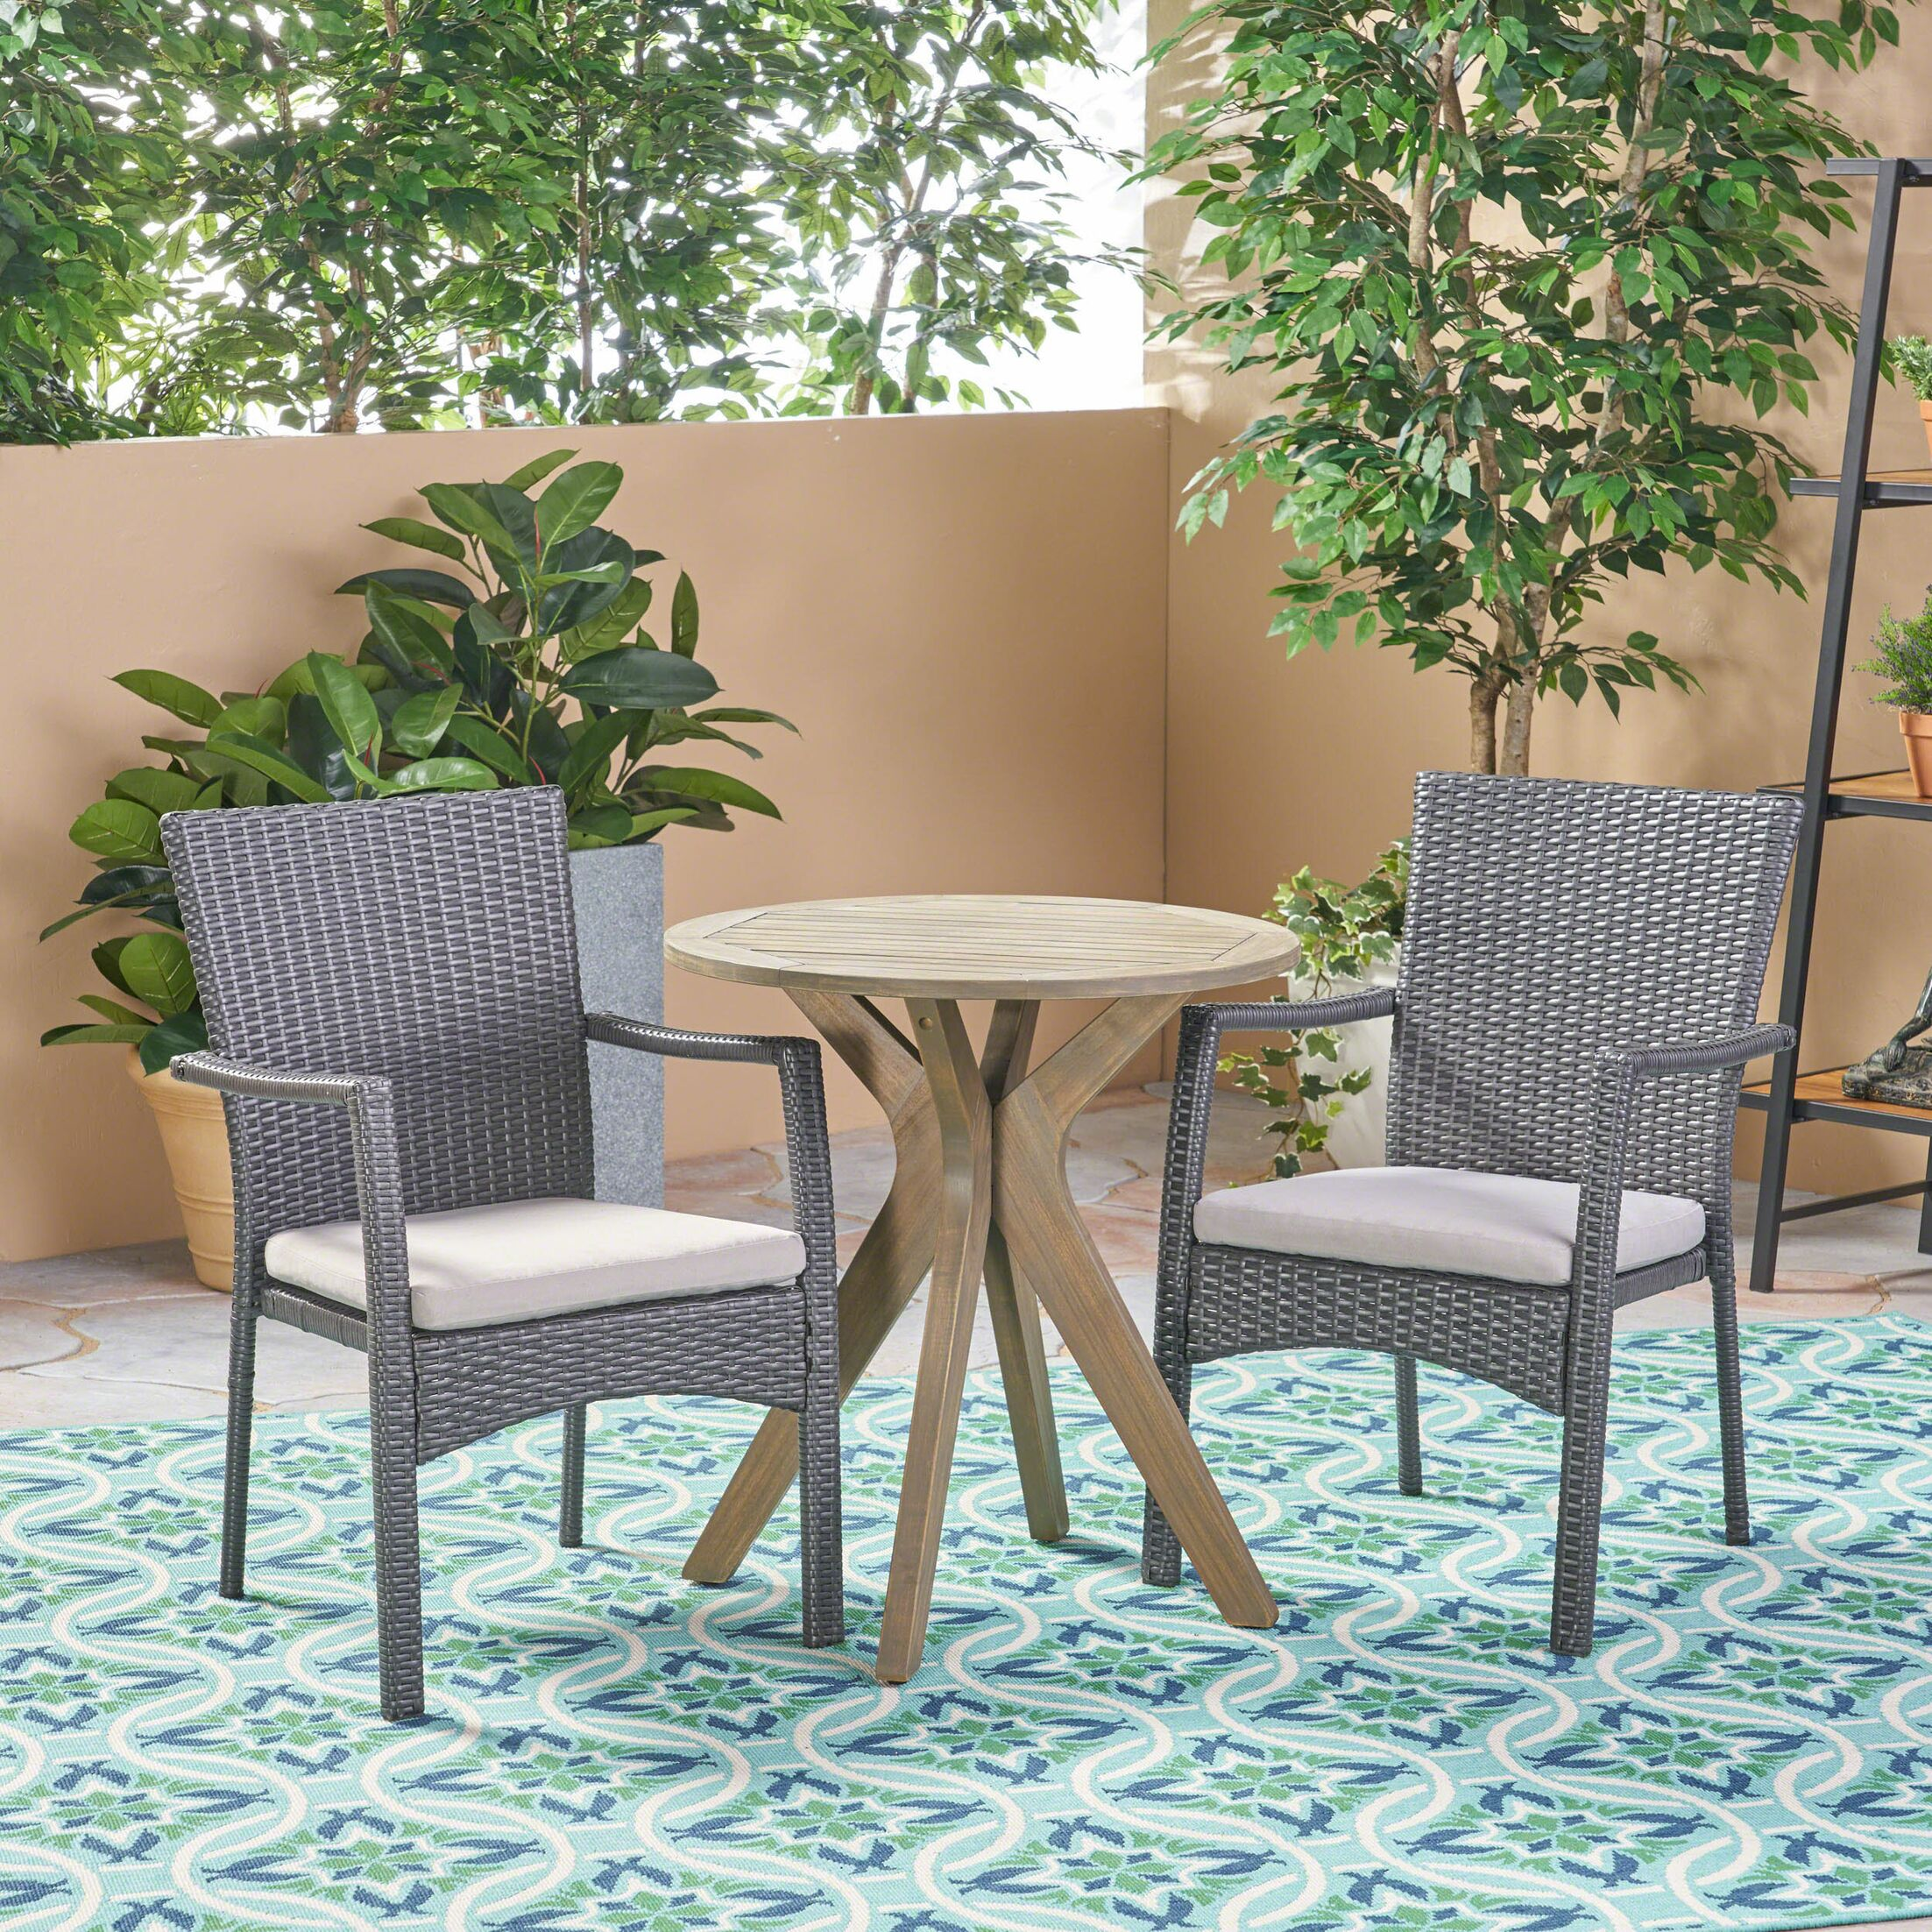 Briar Outdoor 3 Piece Bistro Set with Cushions Color: Gray, Cushion Color: Gray